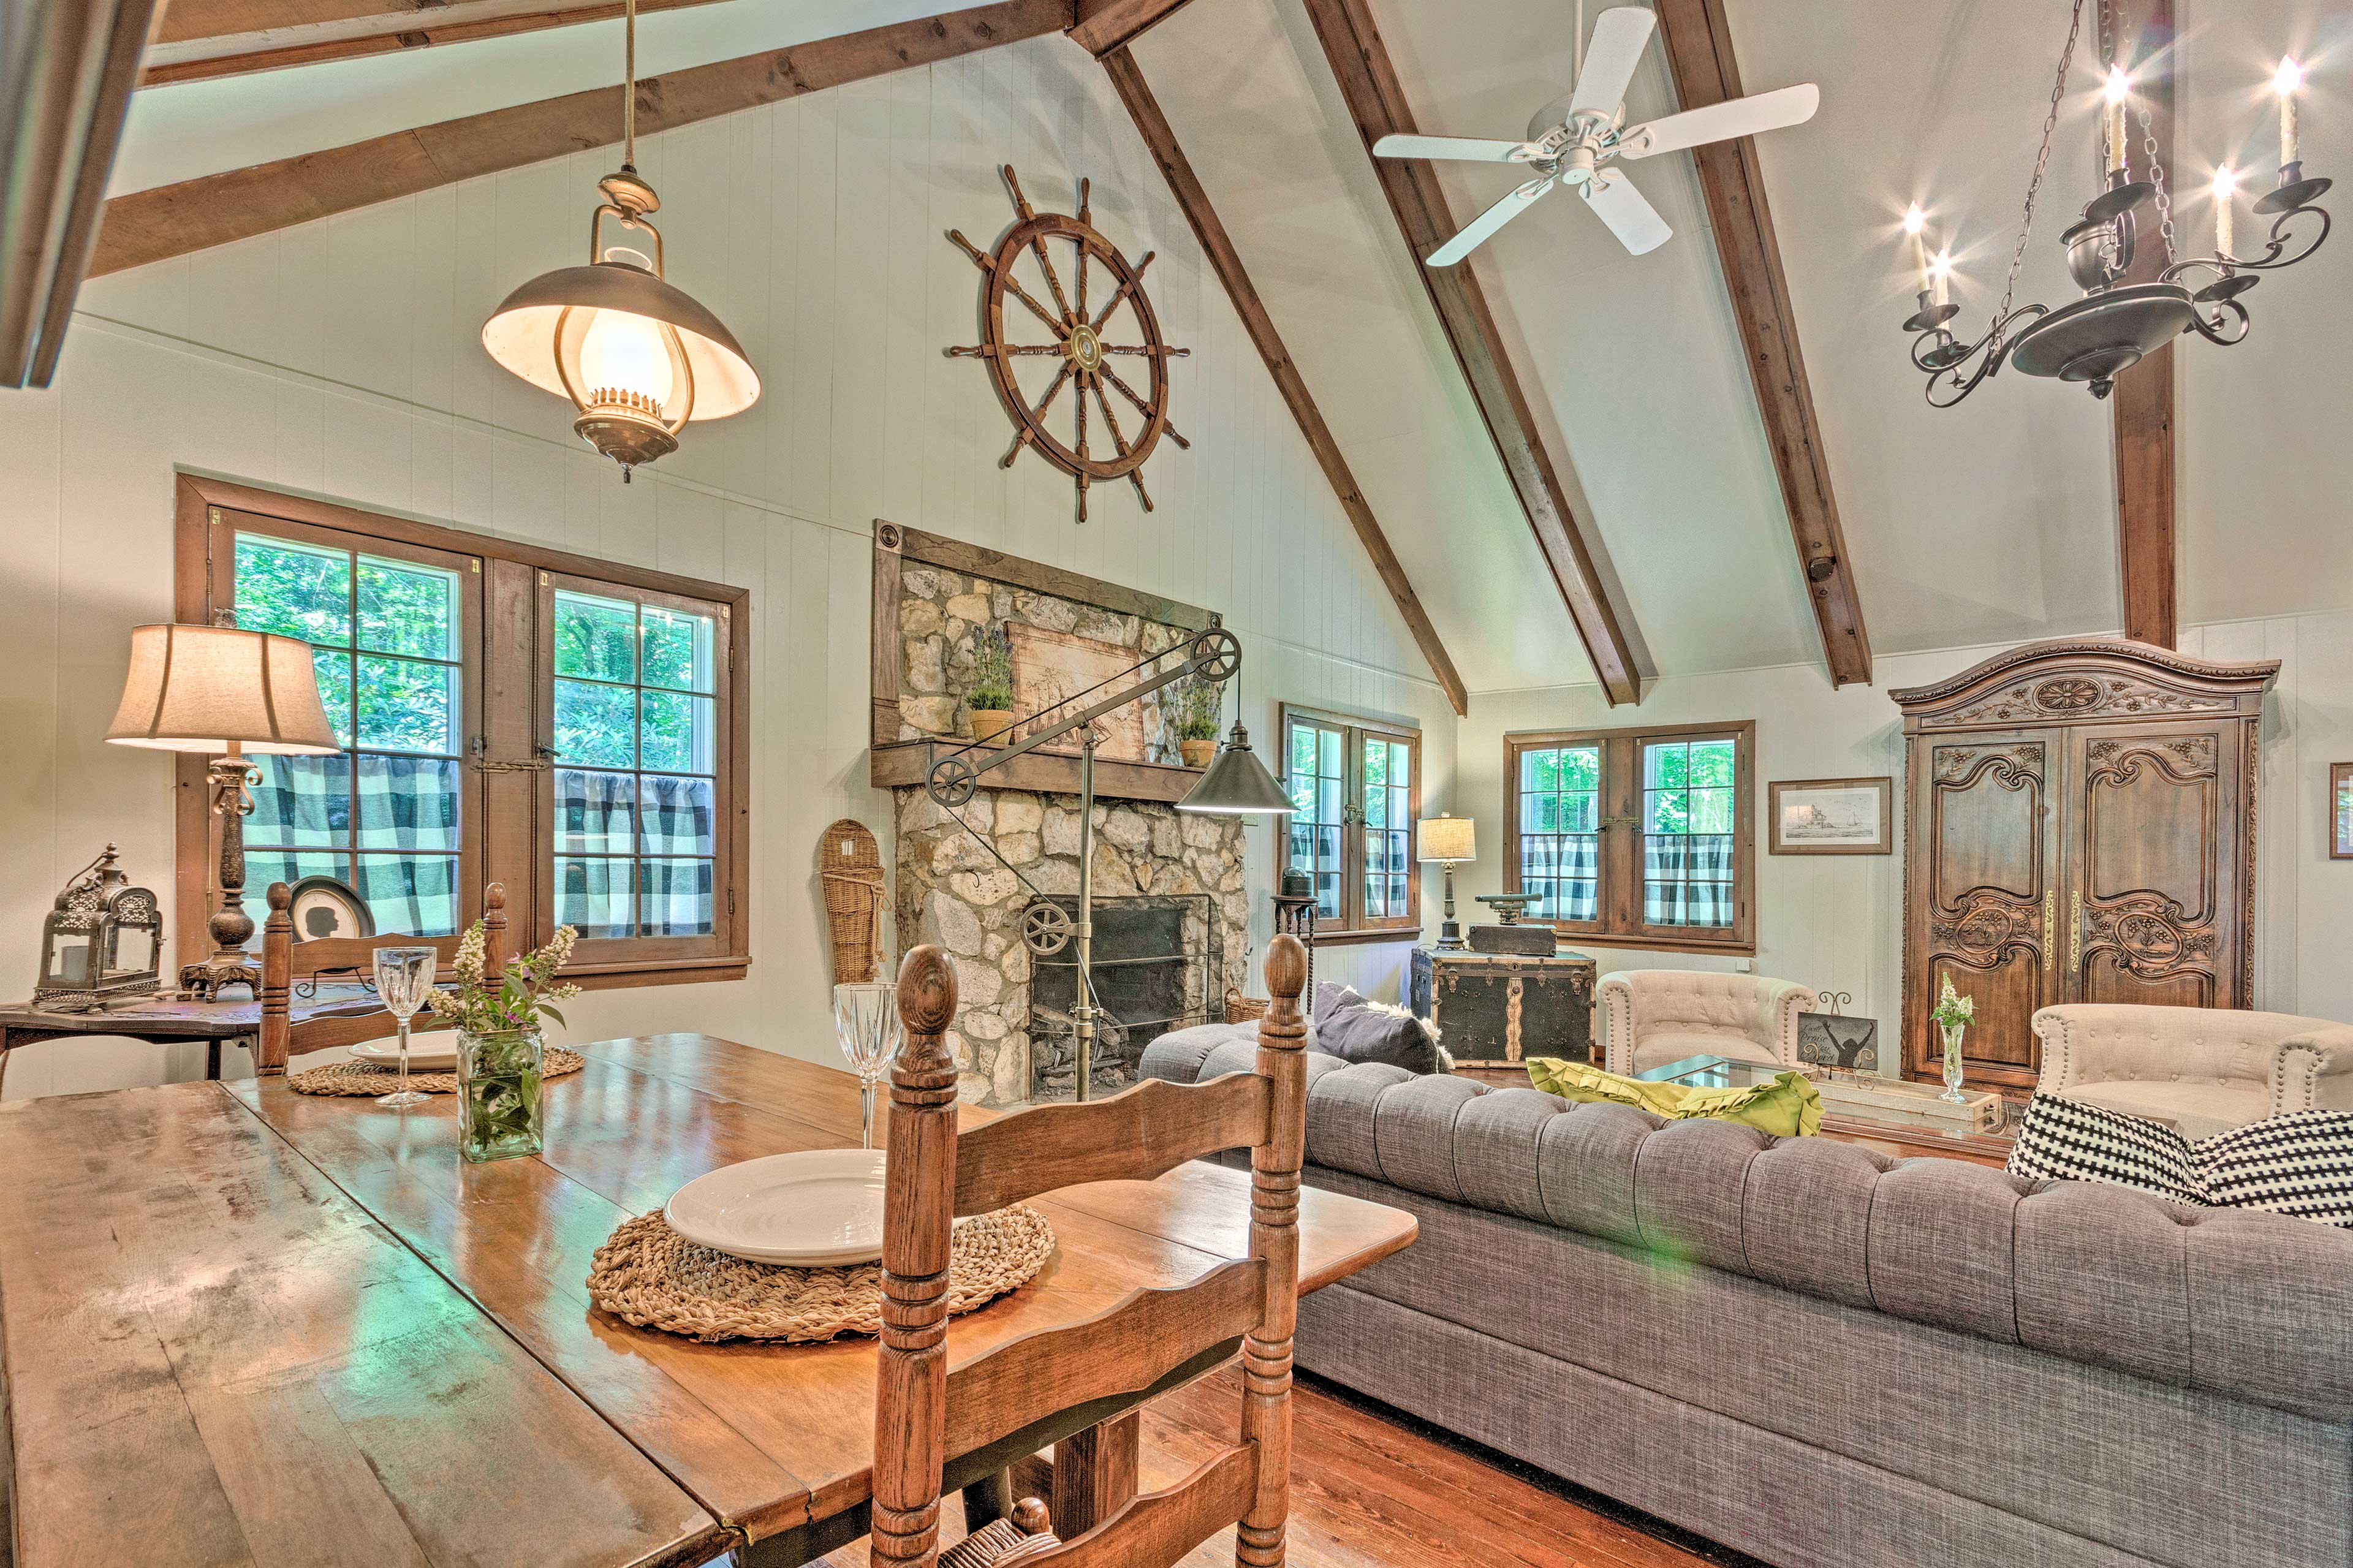 Unwind in the sunroom as you sip coffee or a glass of wine.